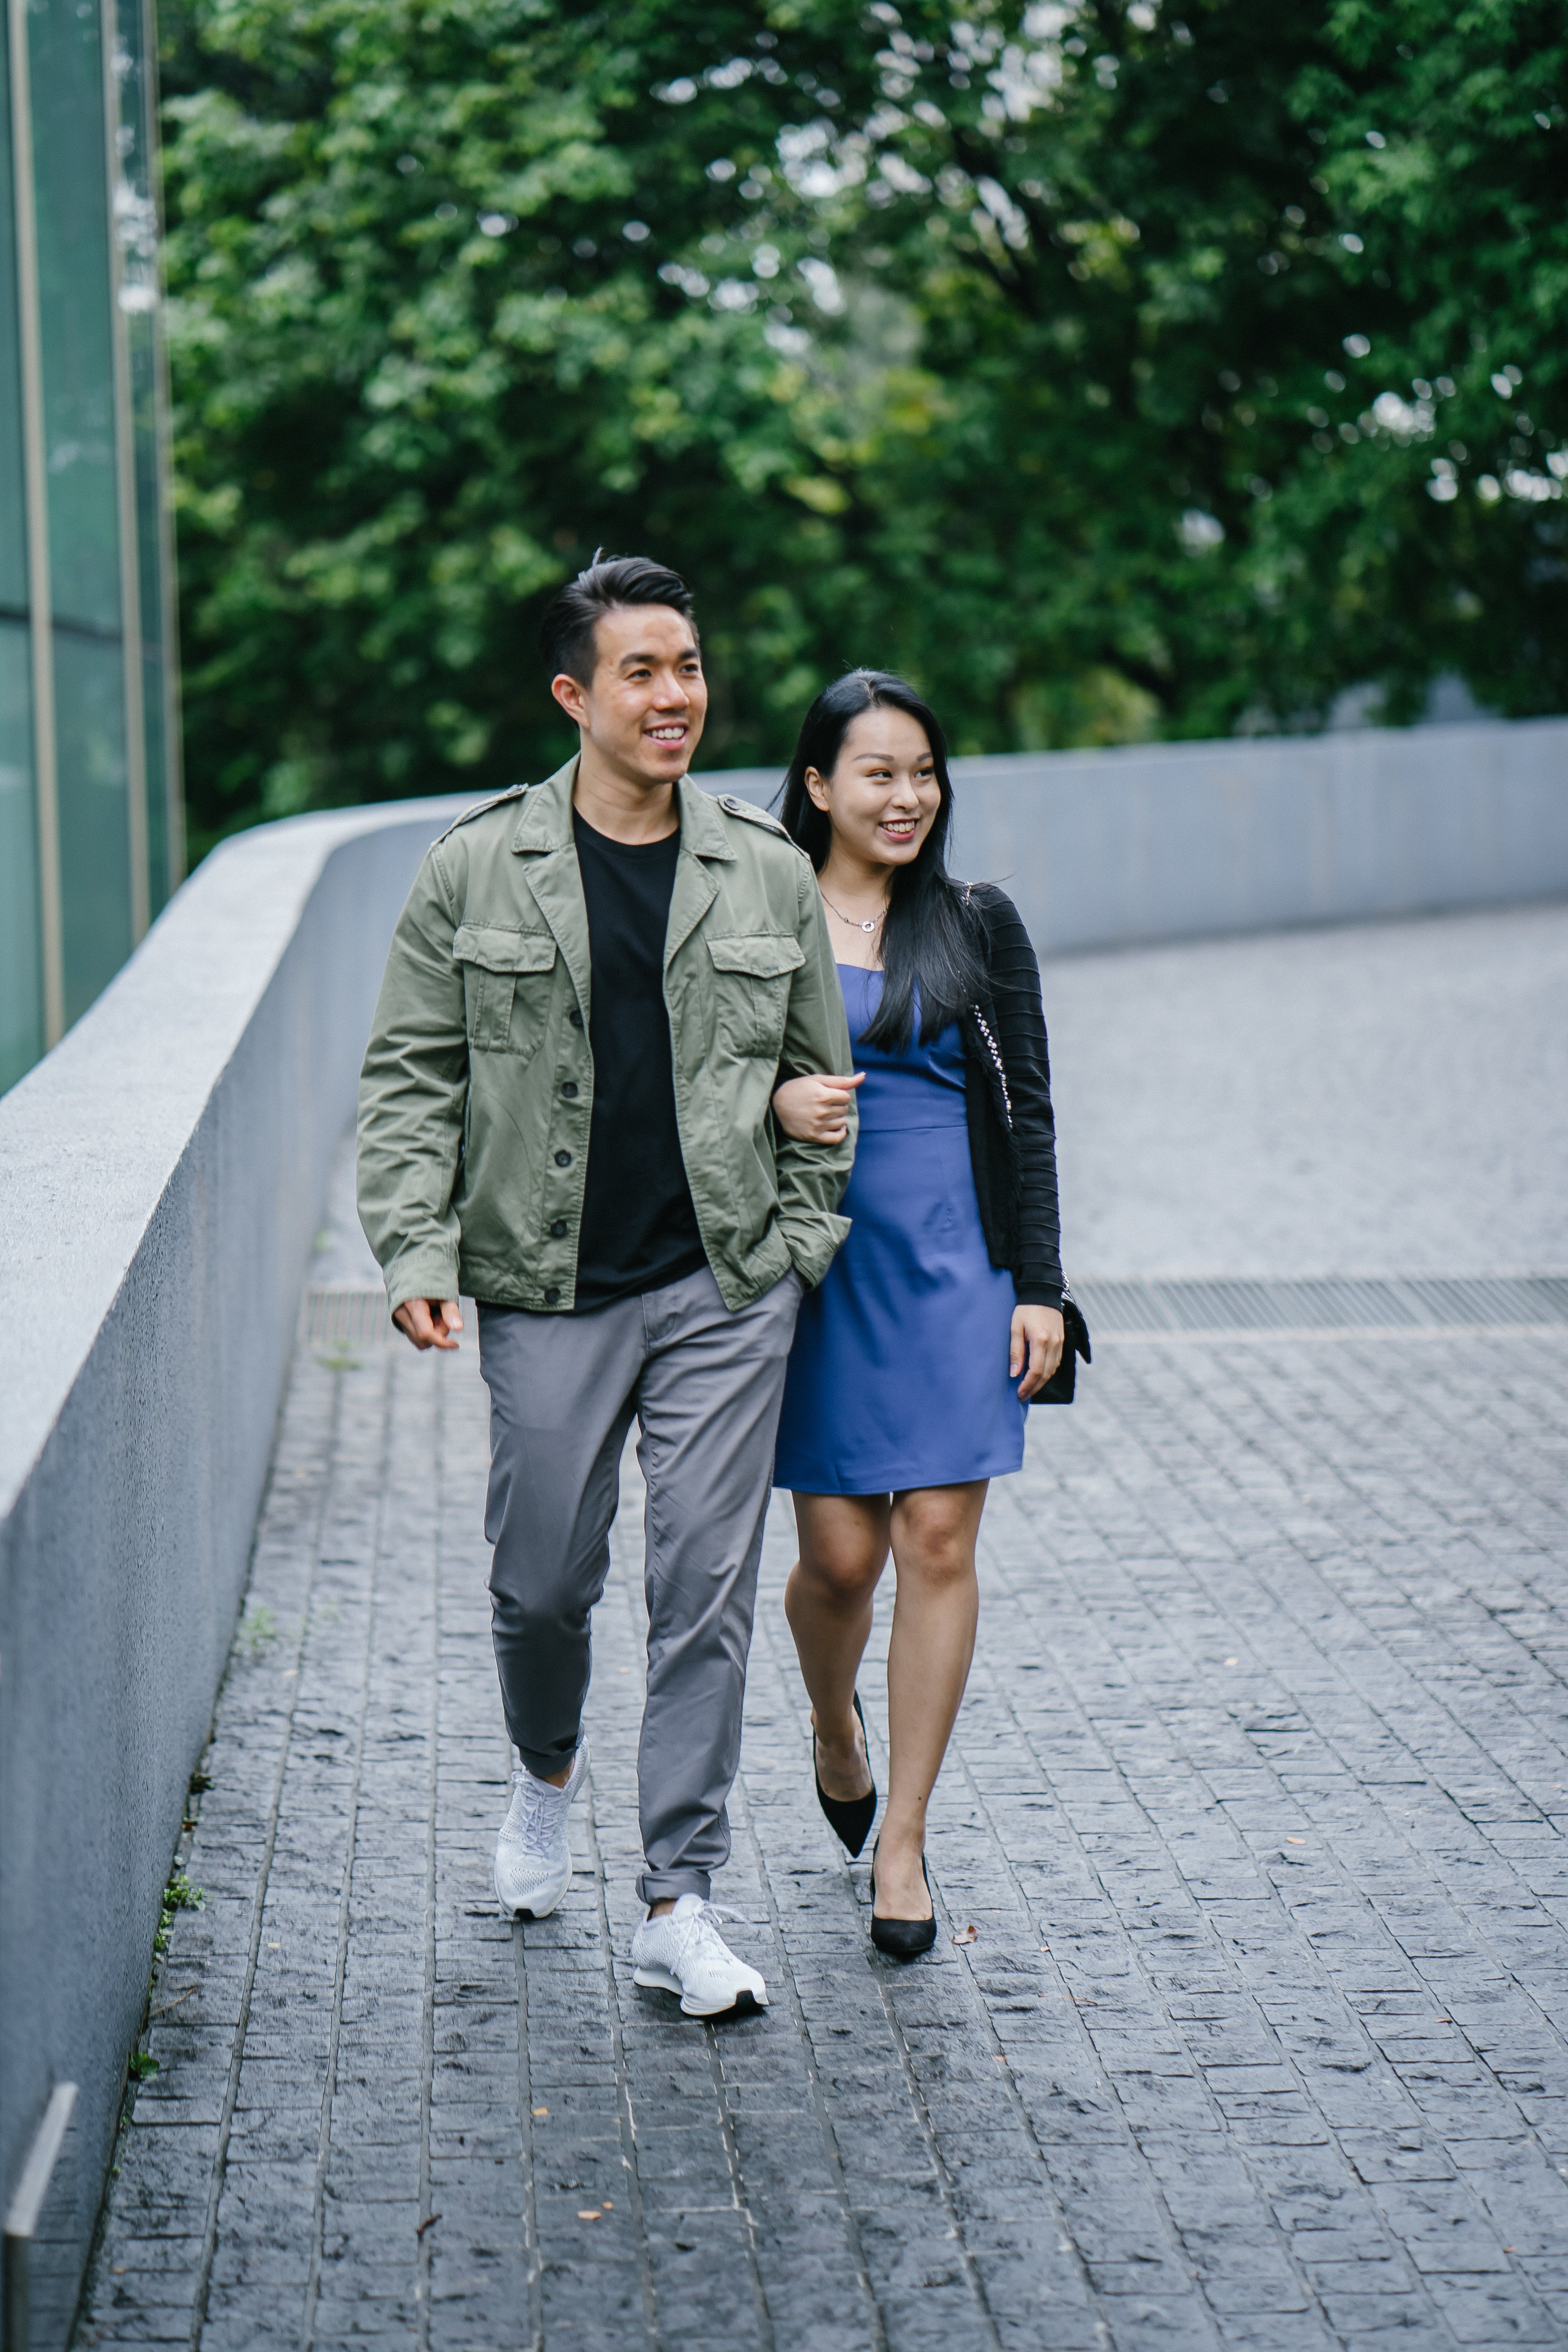 Man and Woman Walking Beside A Building